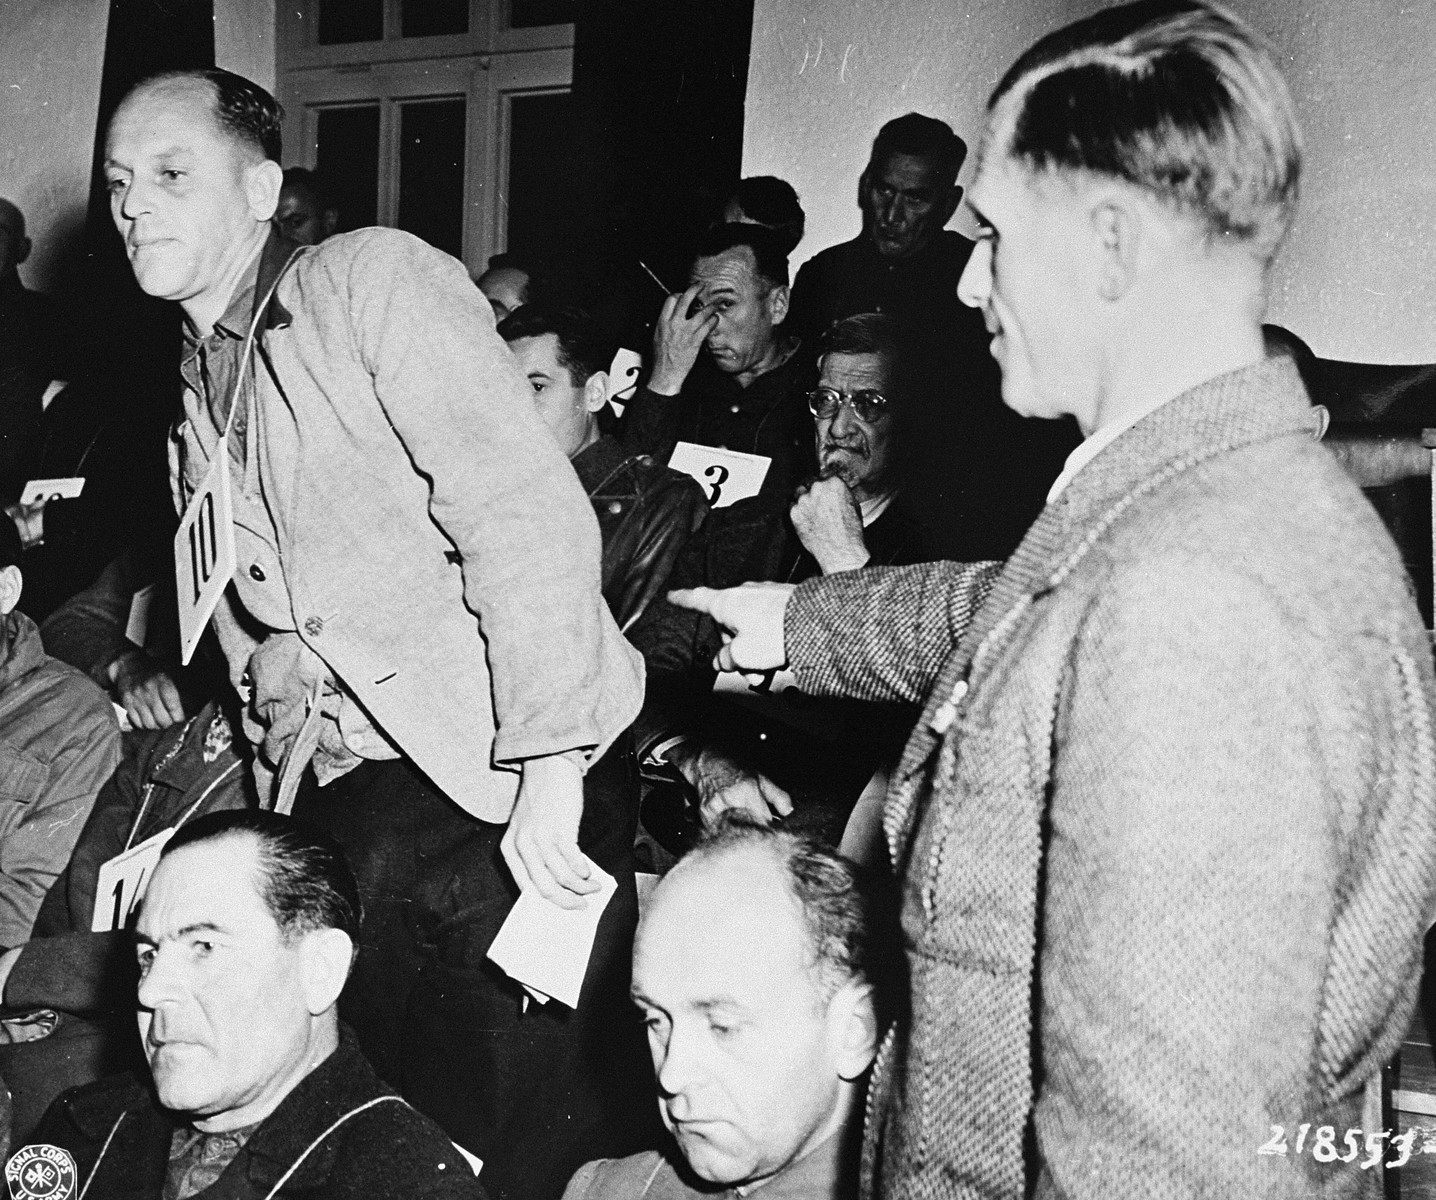 Former inmate Eugen Seybold points out Dr. Fritz Hintermayer as the man present at the mass execution of 95 high-ranking Russian officers held as prisoners of war, during the trial of former camp personnel and prisoners from Dachau.